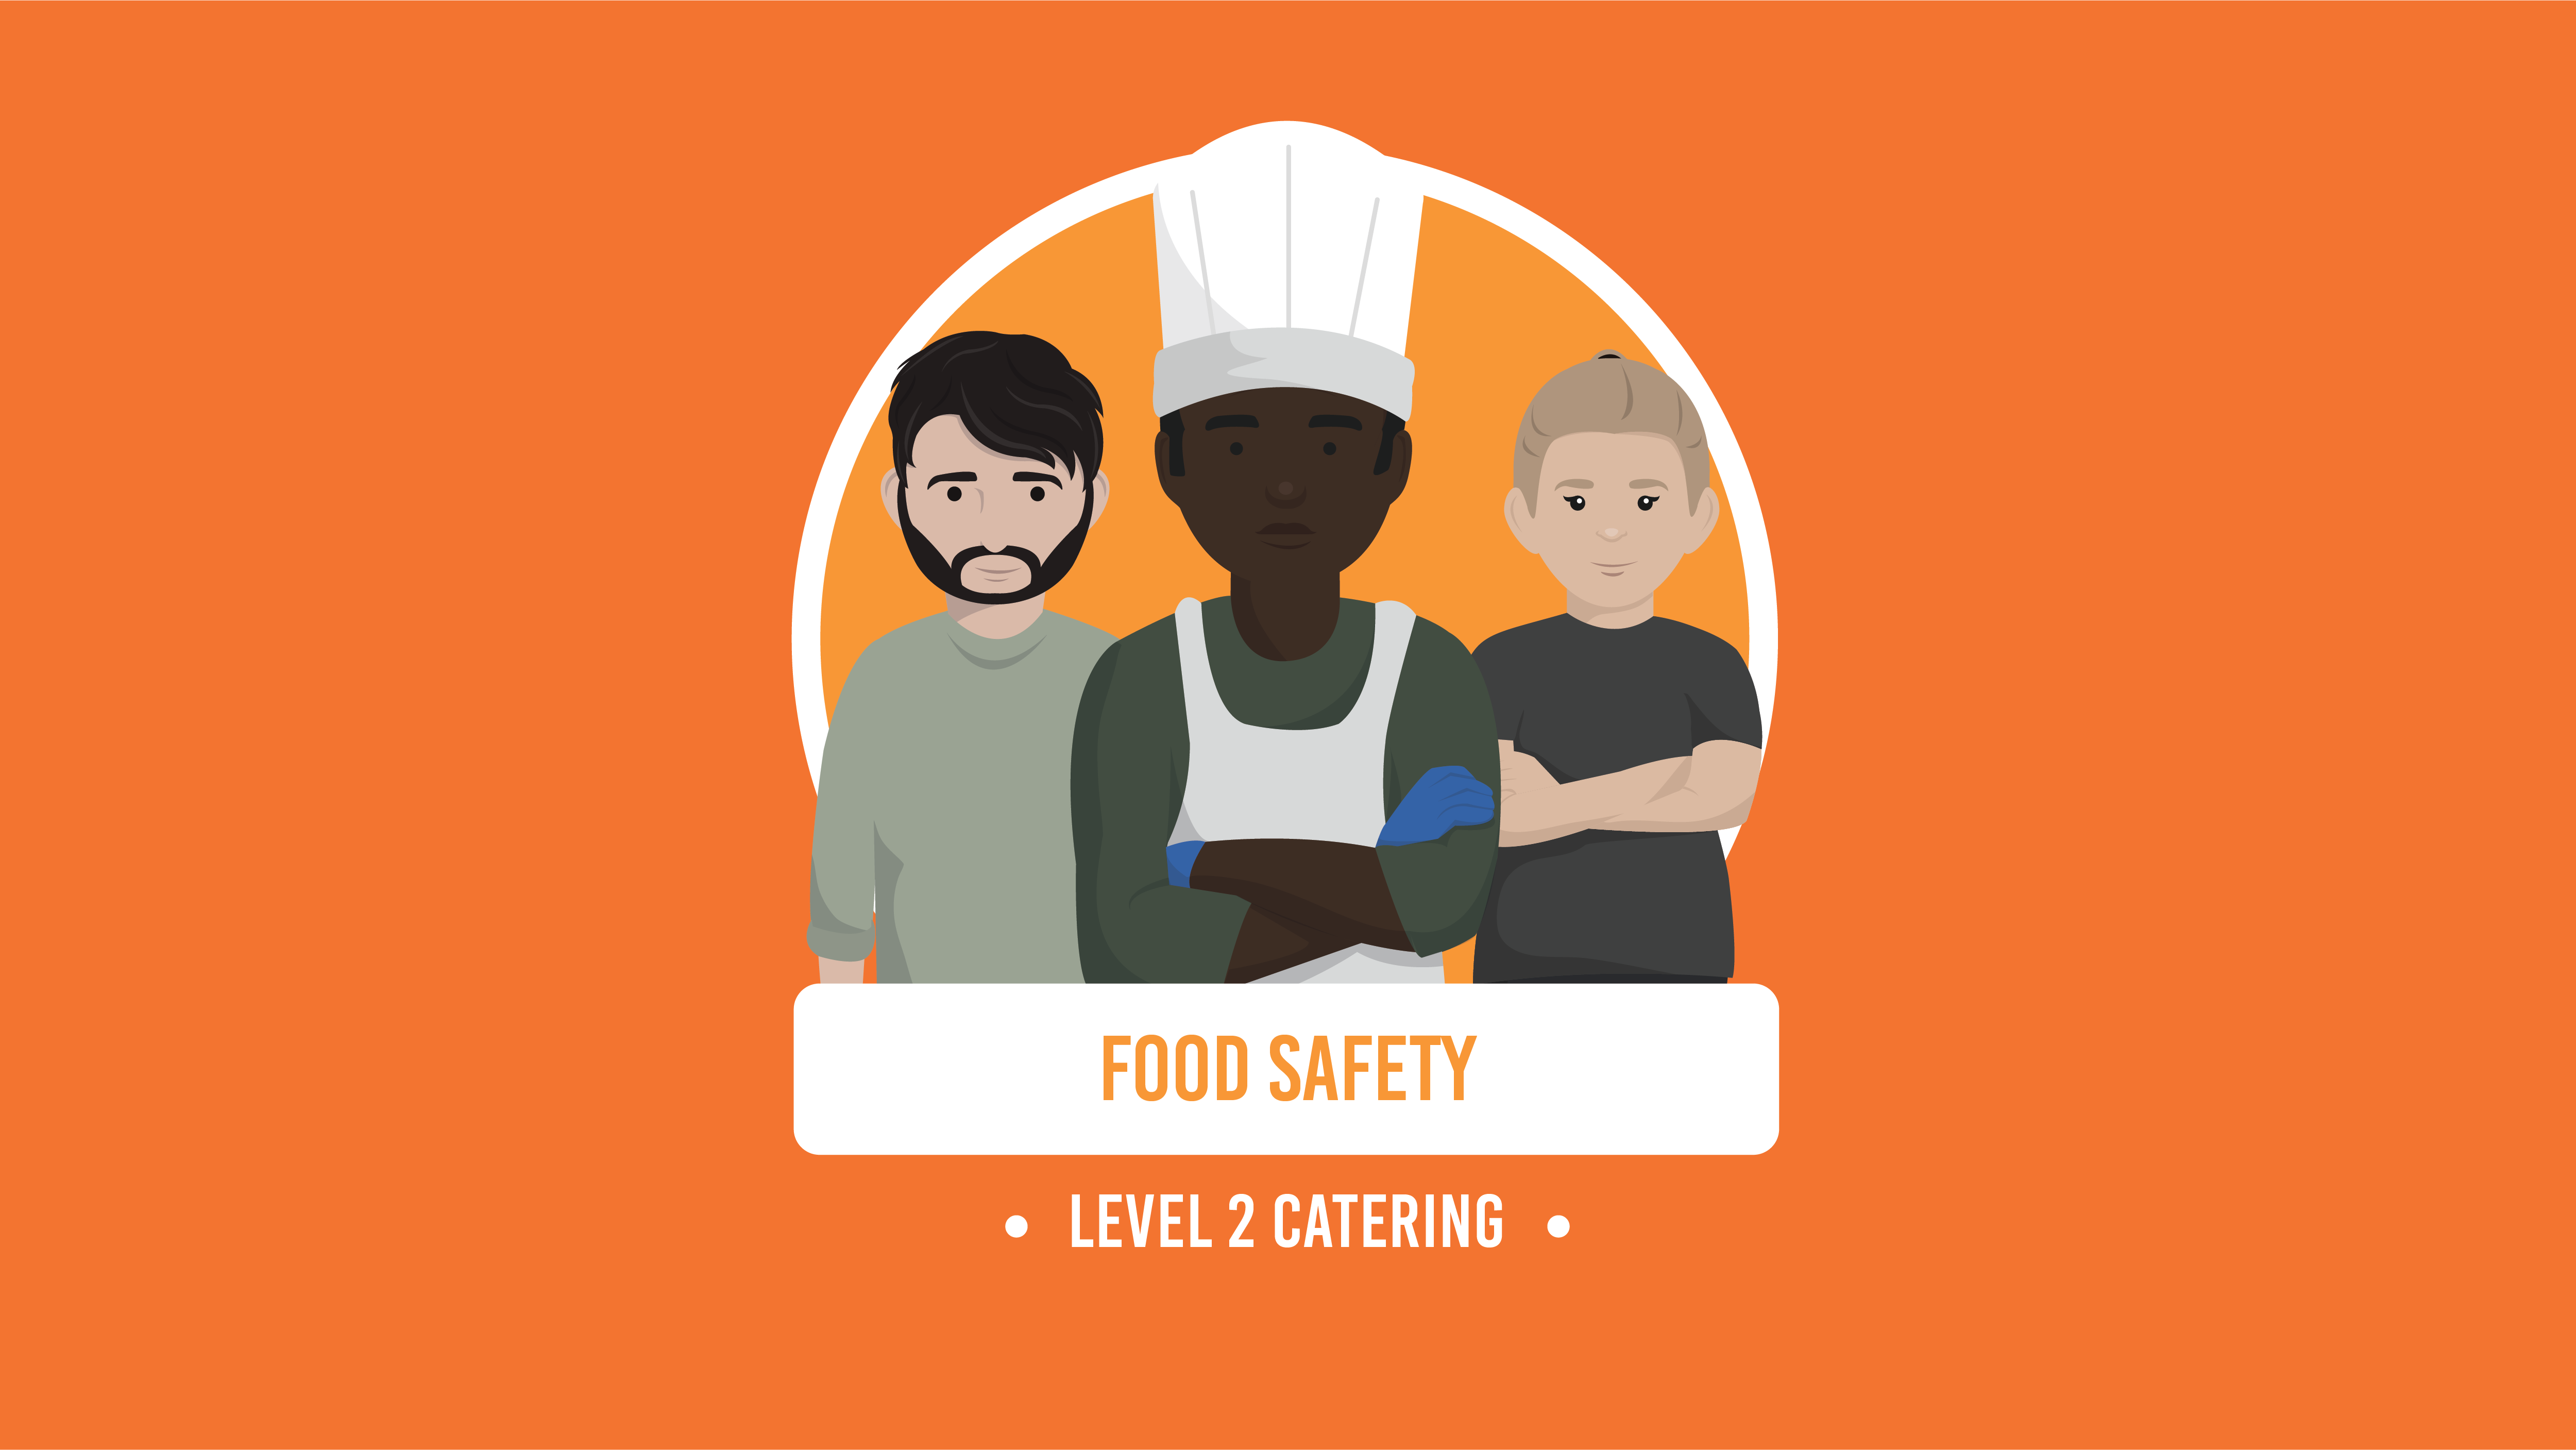 Food Hygiene Level 2 for Catering